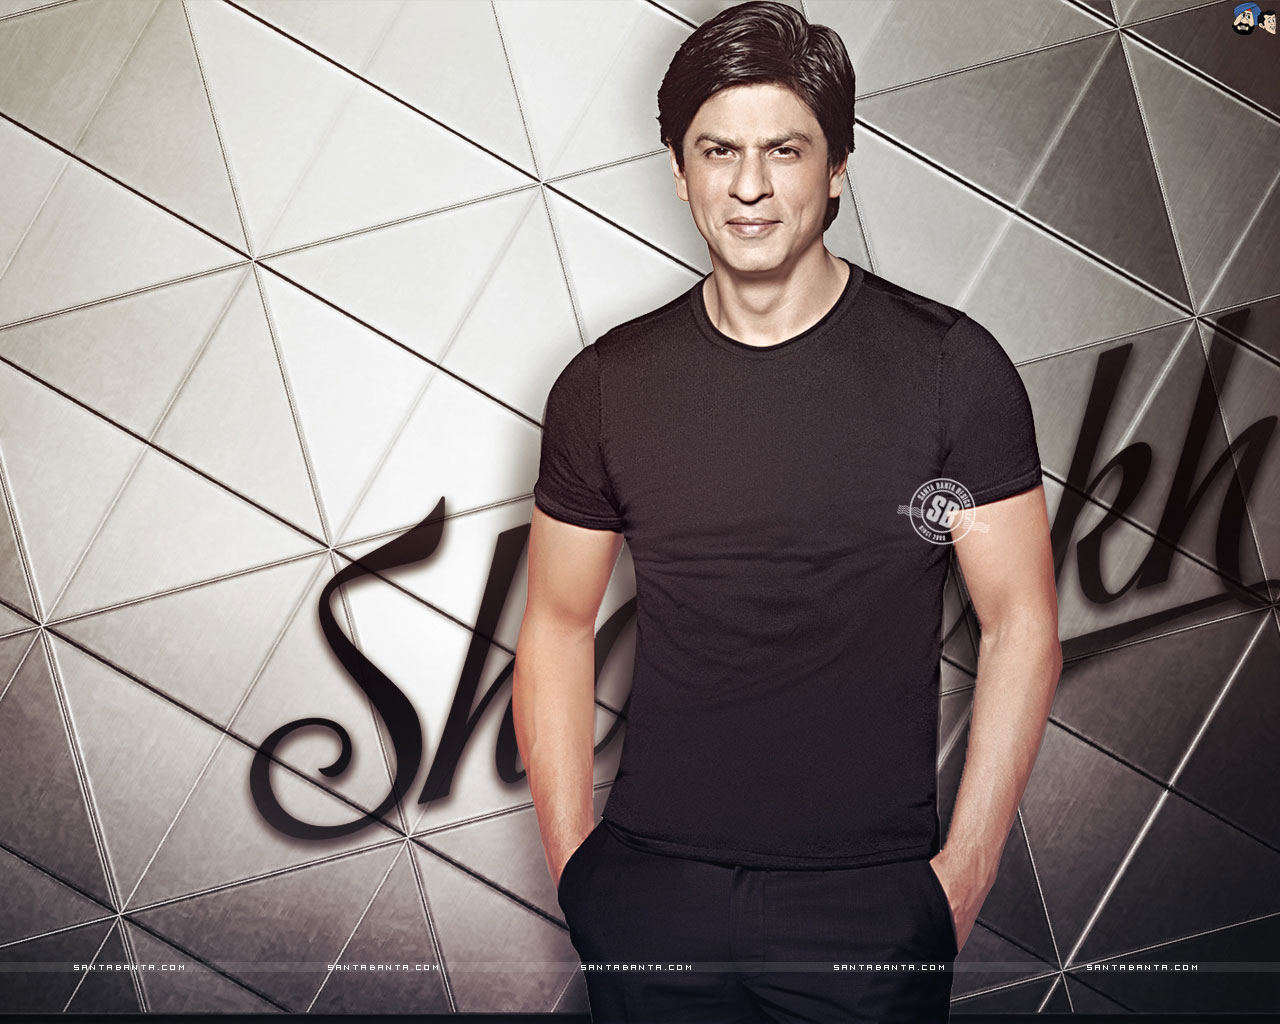 SHAHRUKH KHAN HD WALLPAPERS FREE DOWNLOAD - HD WALLPAPERS FREE DOWNLOAD